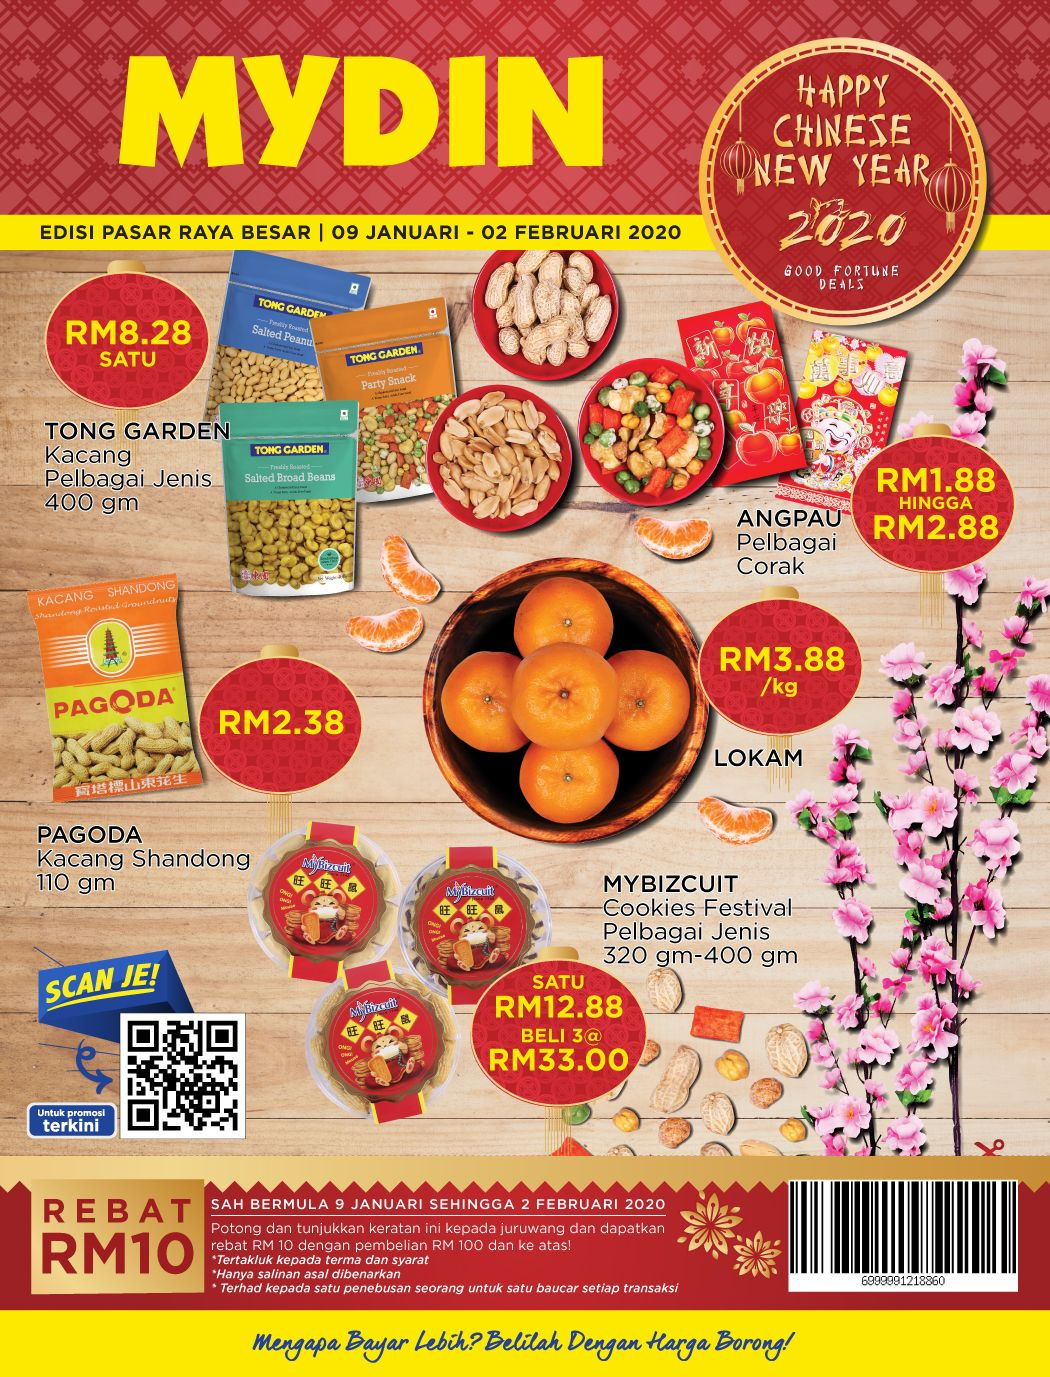 Mydin Cny Promotion Catalogue 9 Jan 2020 2 Feb 2020 In 2020 Catalog Cereal Pops Promotion